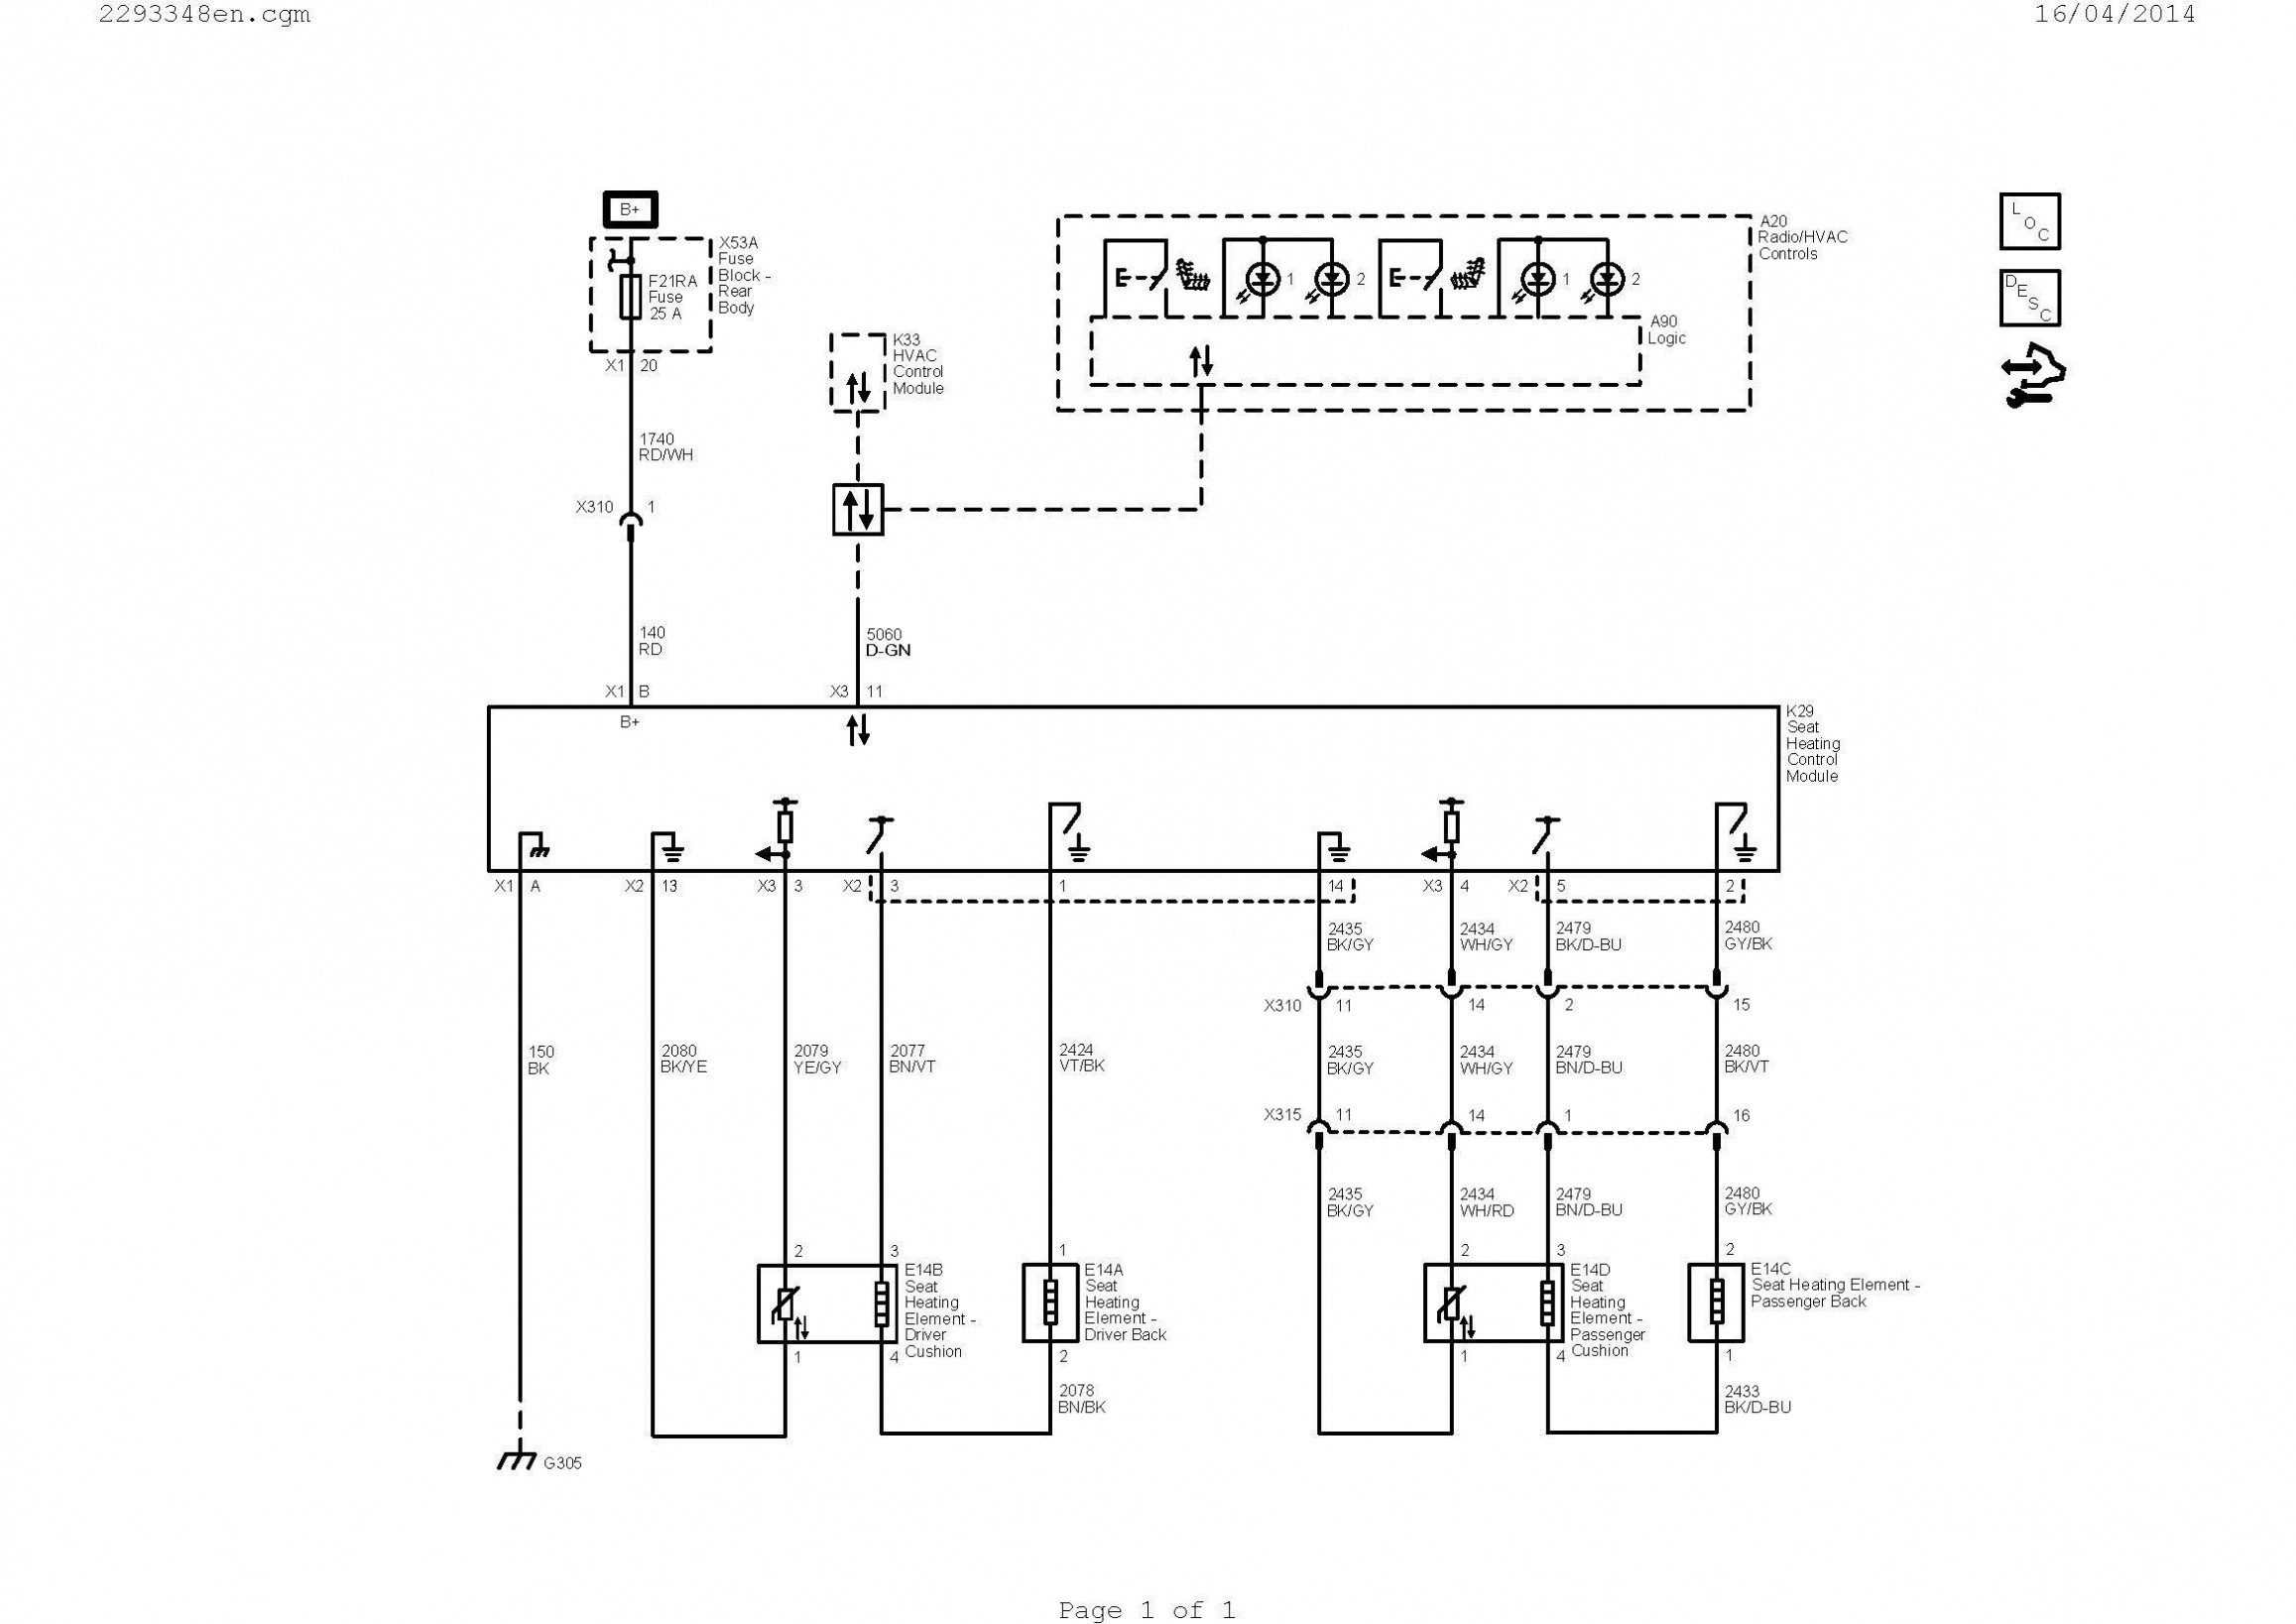 Automotive Brake System Diagram Chevy Ignition System Wiring Diagram Save top Car Brake Diagram Rear